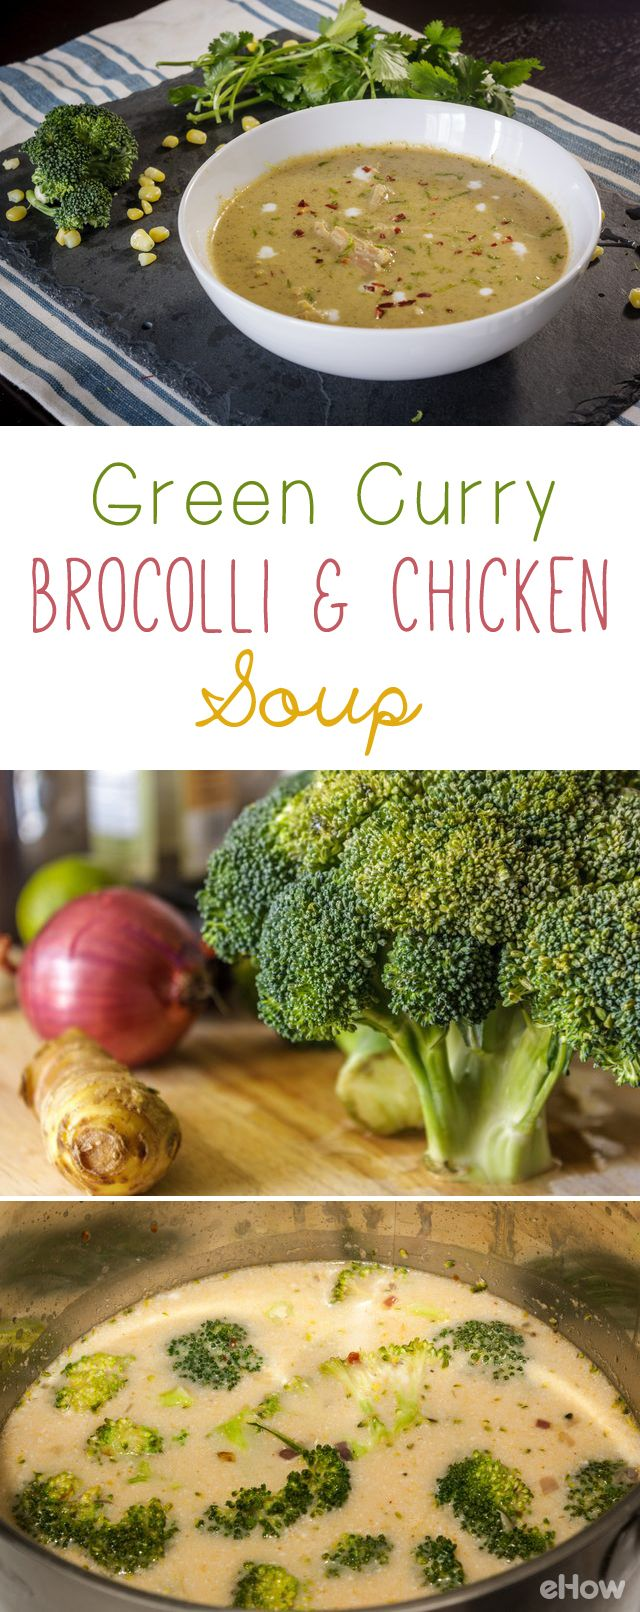 This is a simple one pot meal that's ideal for busy weeknights. Hearty yet light, Thai condiments add a punch to broccoli even the kids or picky eaters will love!  Your cooking time can be cut down by using a store-bought rotisserie chicken. Easy! Great as leftovers, it stays well refrigerated for 2 to 3 days. http://www.ehow.com/how_12343151_green-curryinspired-broccoli-chicken-soup-recipe.html?utm_source=pinterest.com&utm_medium=referral&utm_content=freestyle&utm_campaign=fanpage